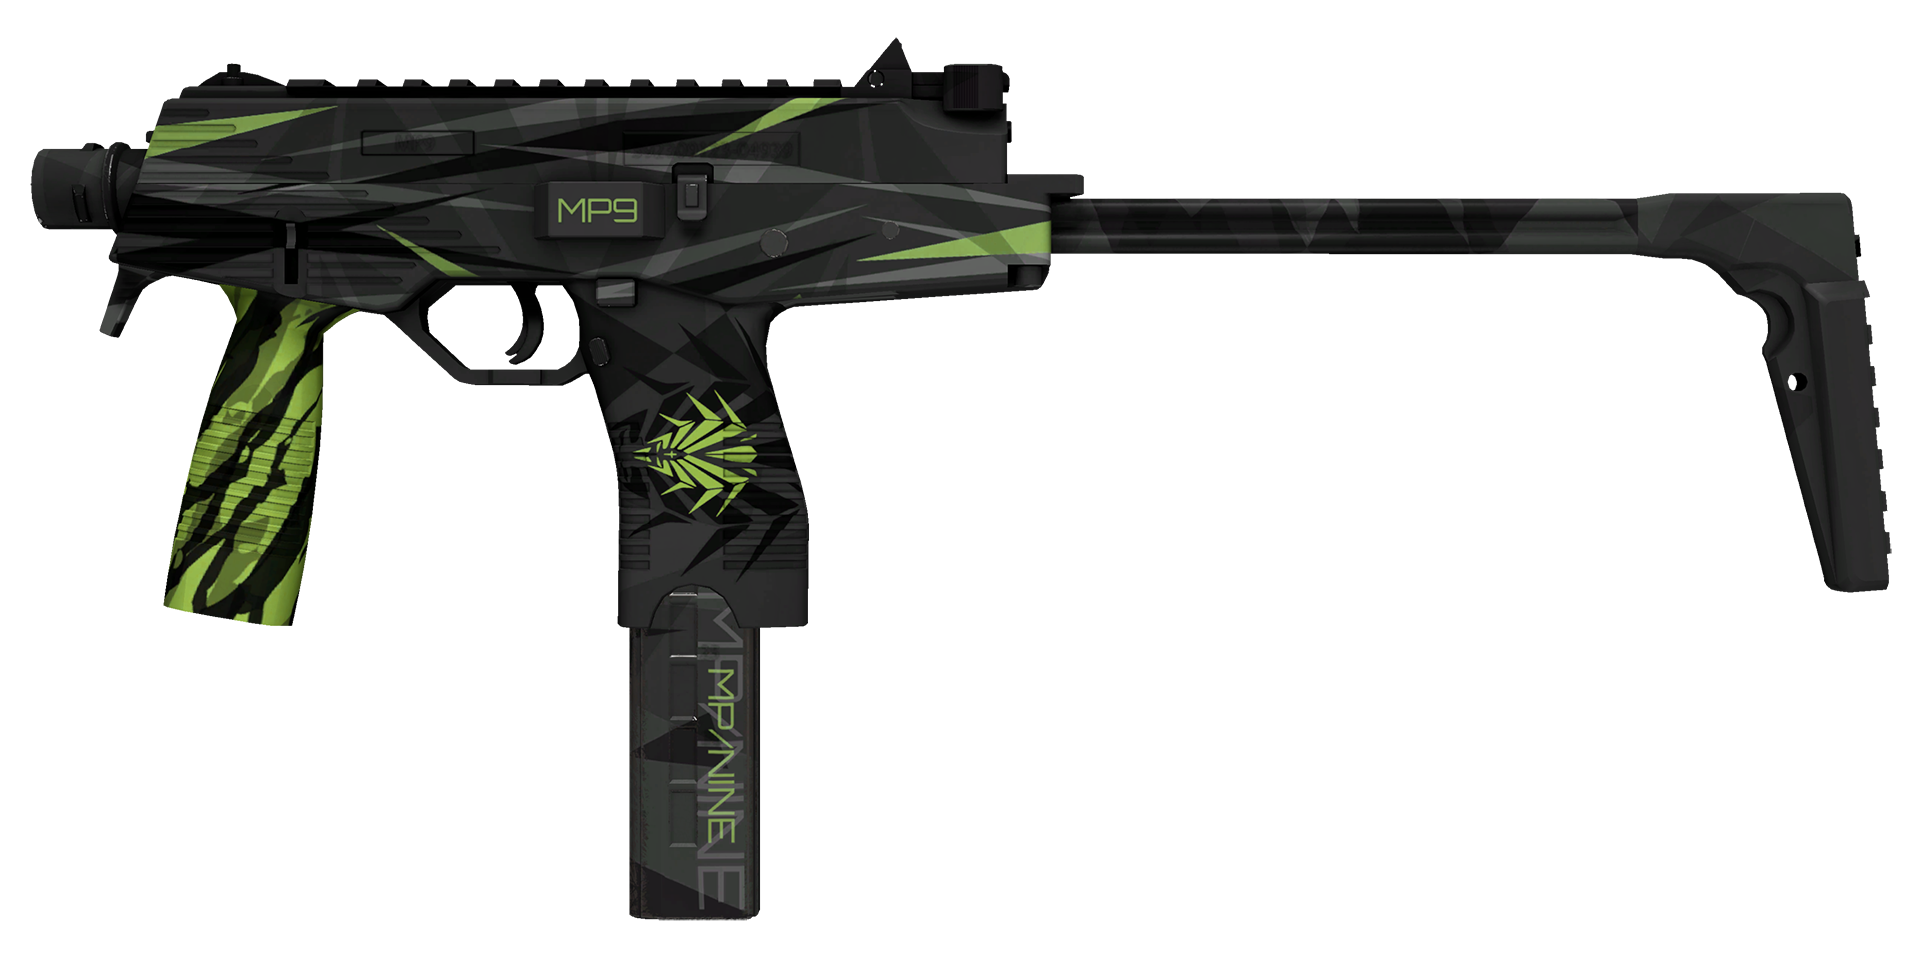 MP9 Deadly Poison Large Rendering